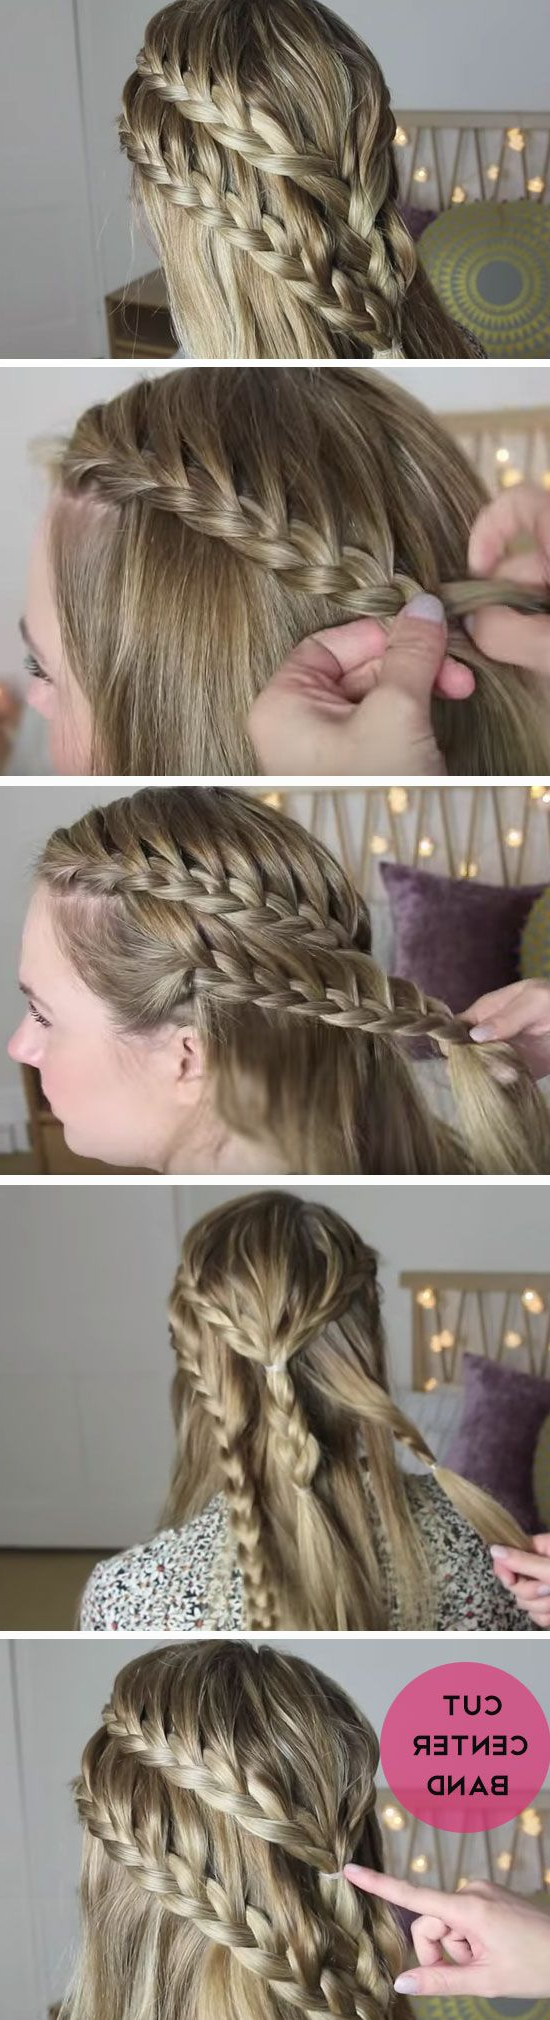 Game Of Thrones With Regard To Fashionable Medieval Crown Braided Hairstyles (View 10 of 20)